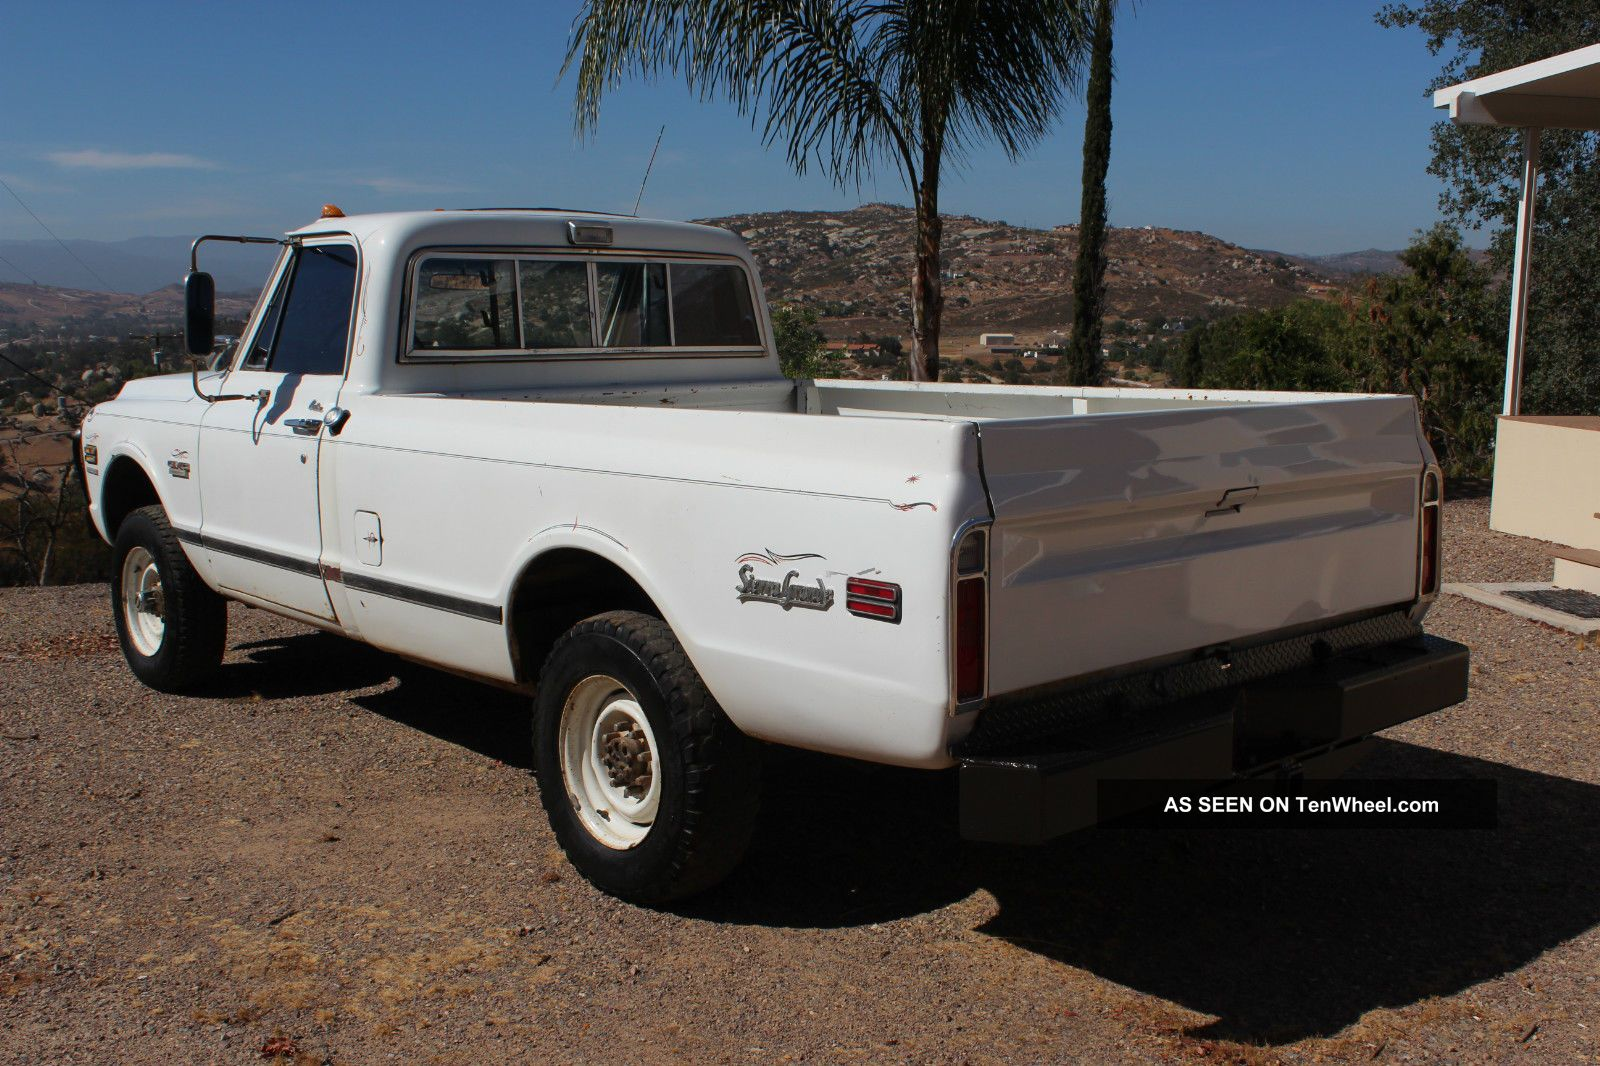 1970 gmc chevy k20 4x4 3 4 ton. Black Bedroom Furniture Sets. Home Design Ideas